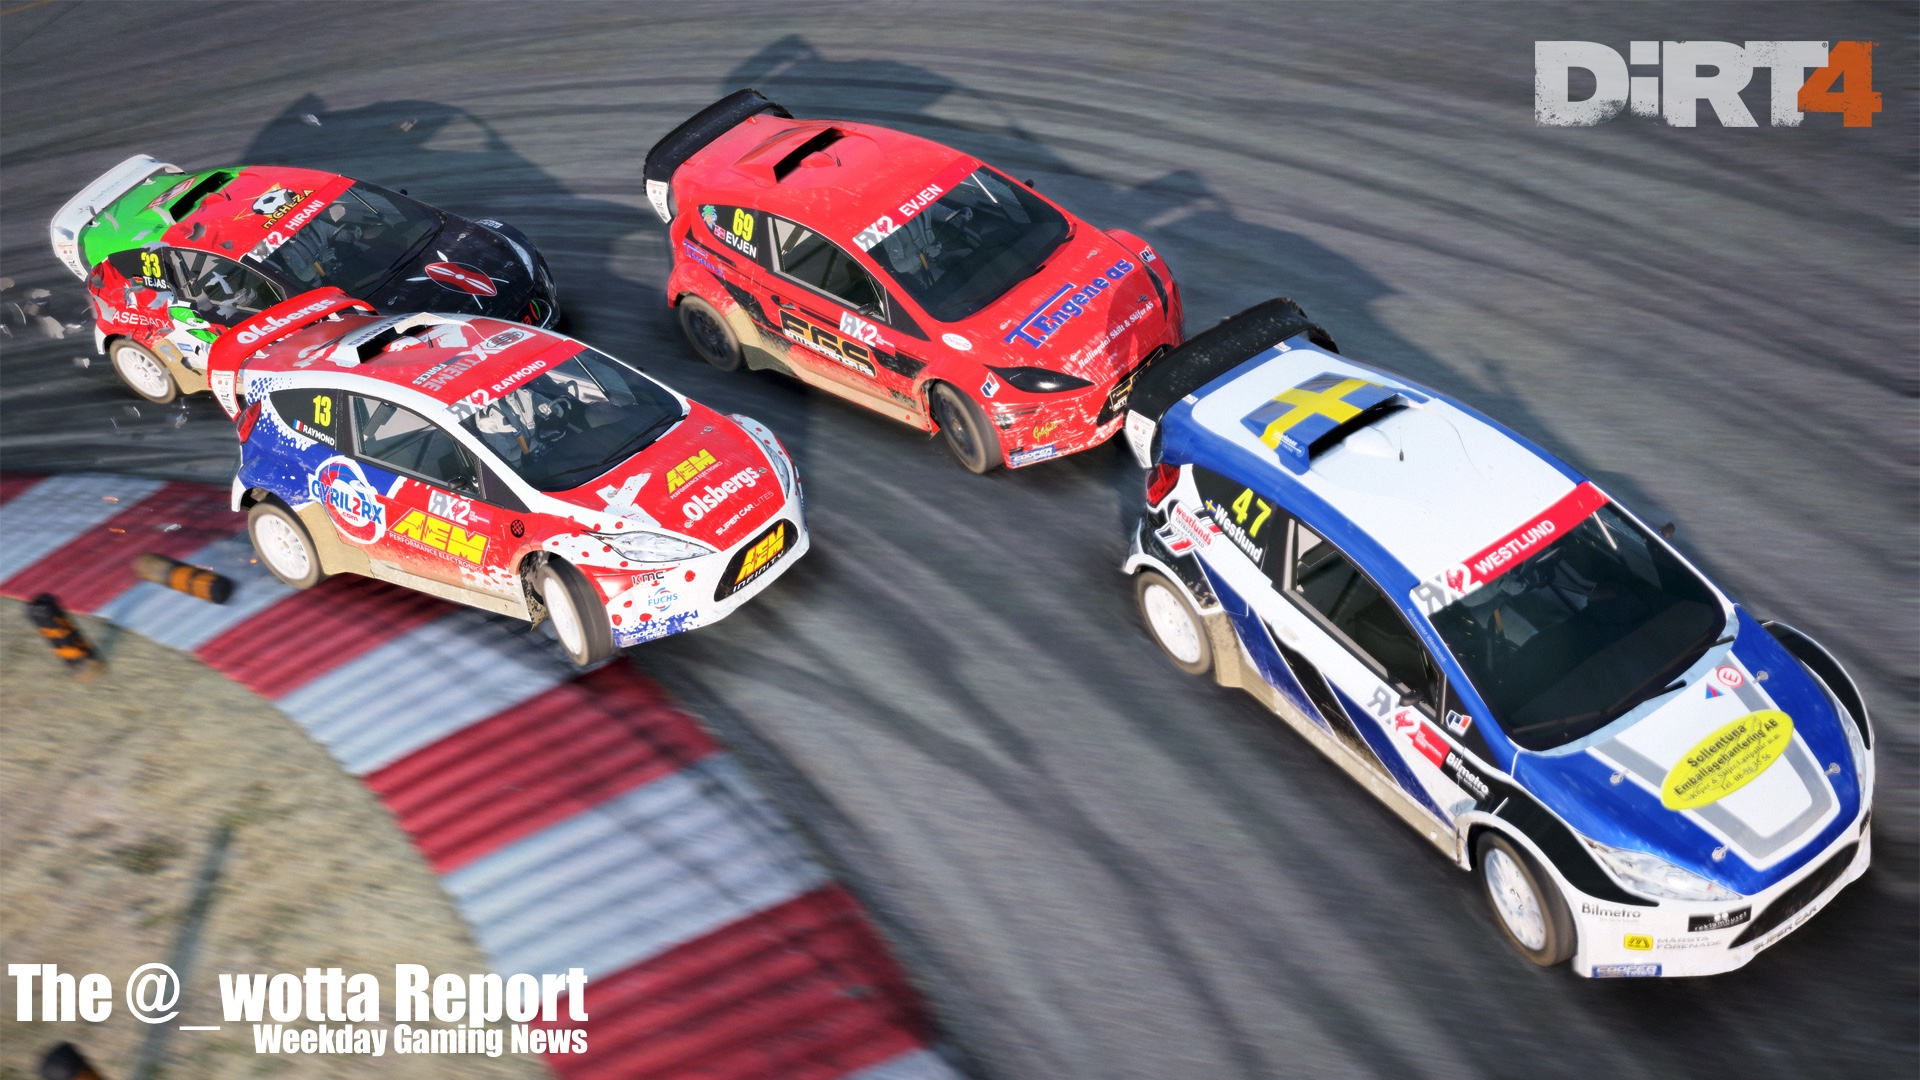 The @_wotta Report Square announces Marvel Game, DiRT 4 announced | Weekday Gaming News